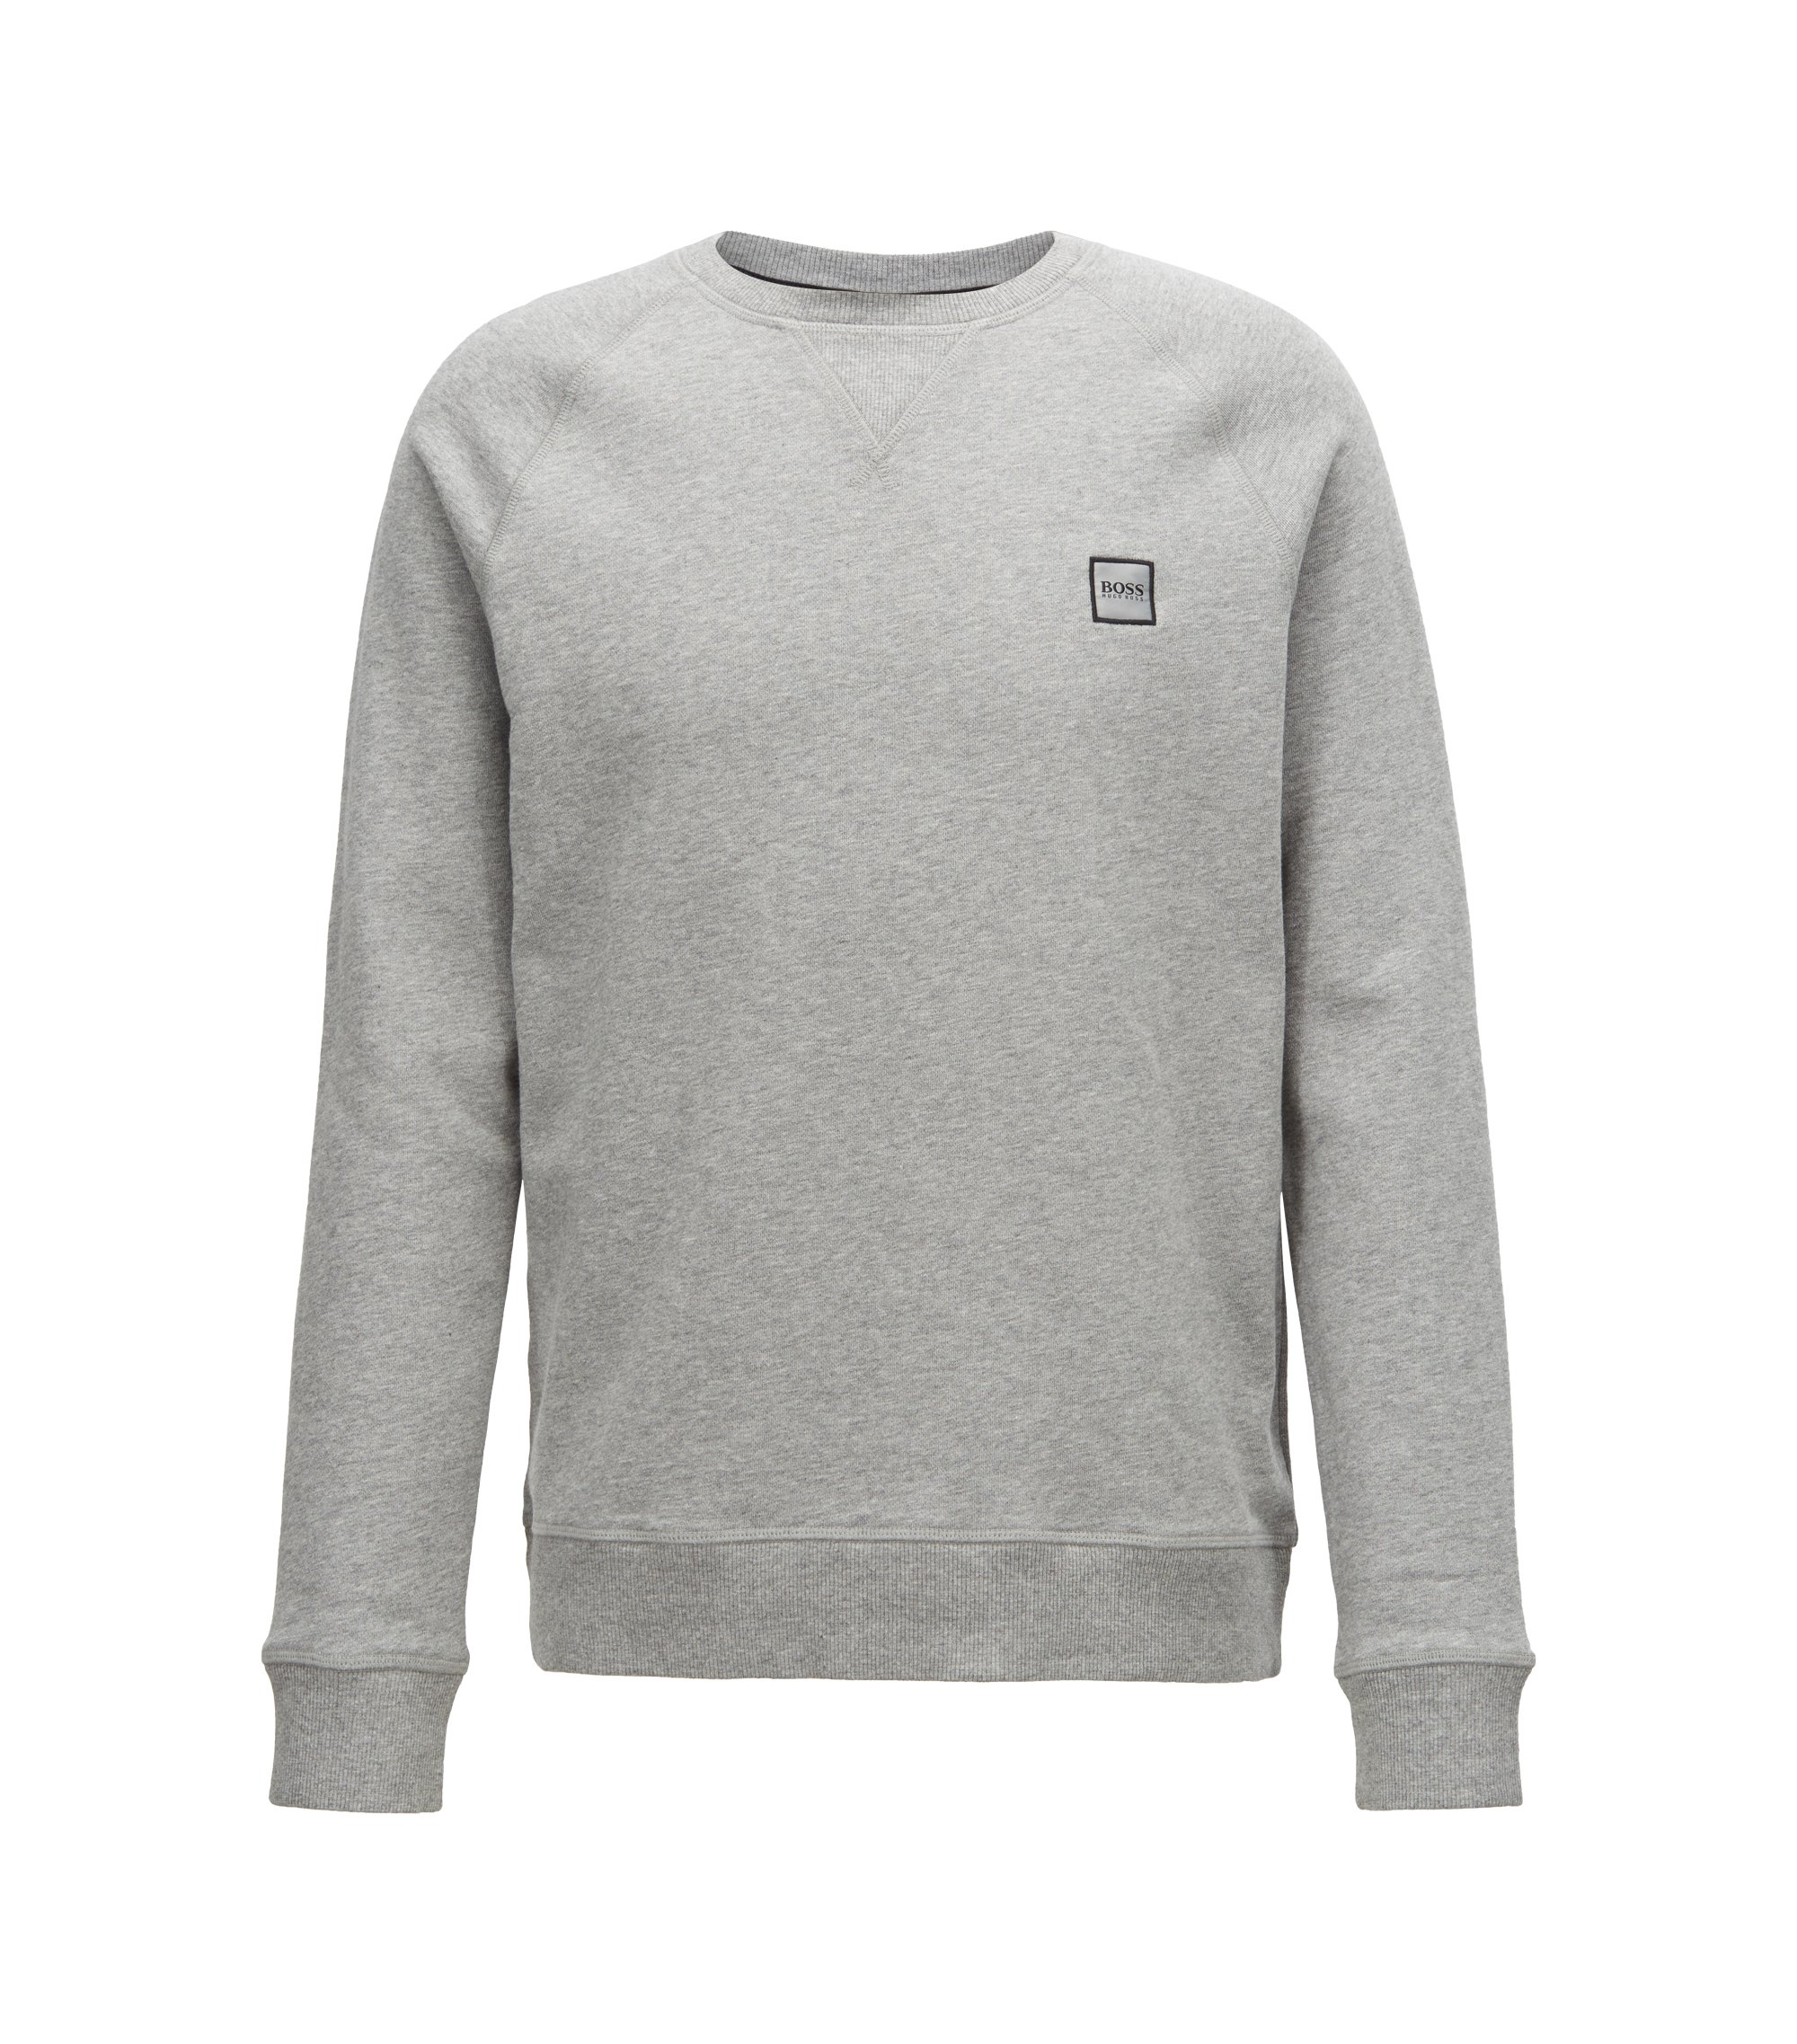 Sweat en molleton French Terry à patch logo, Gris chiné